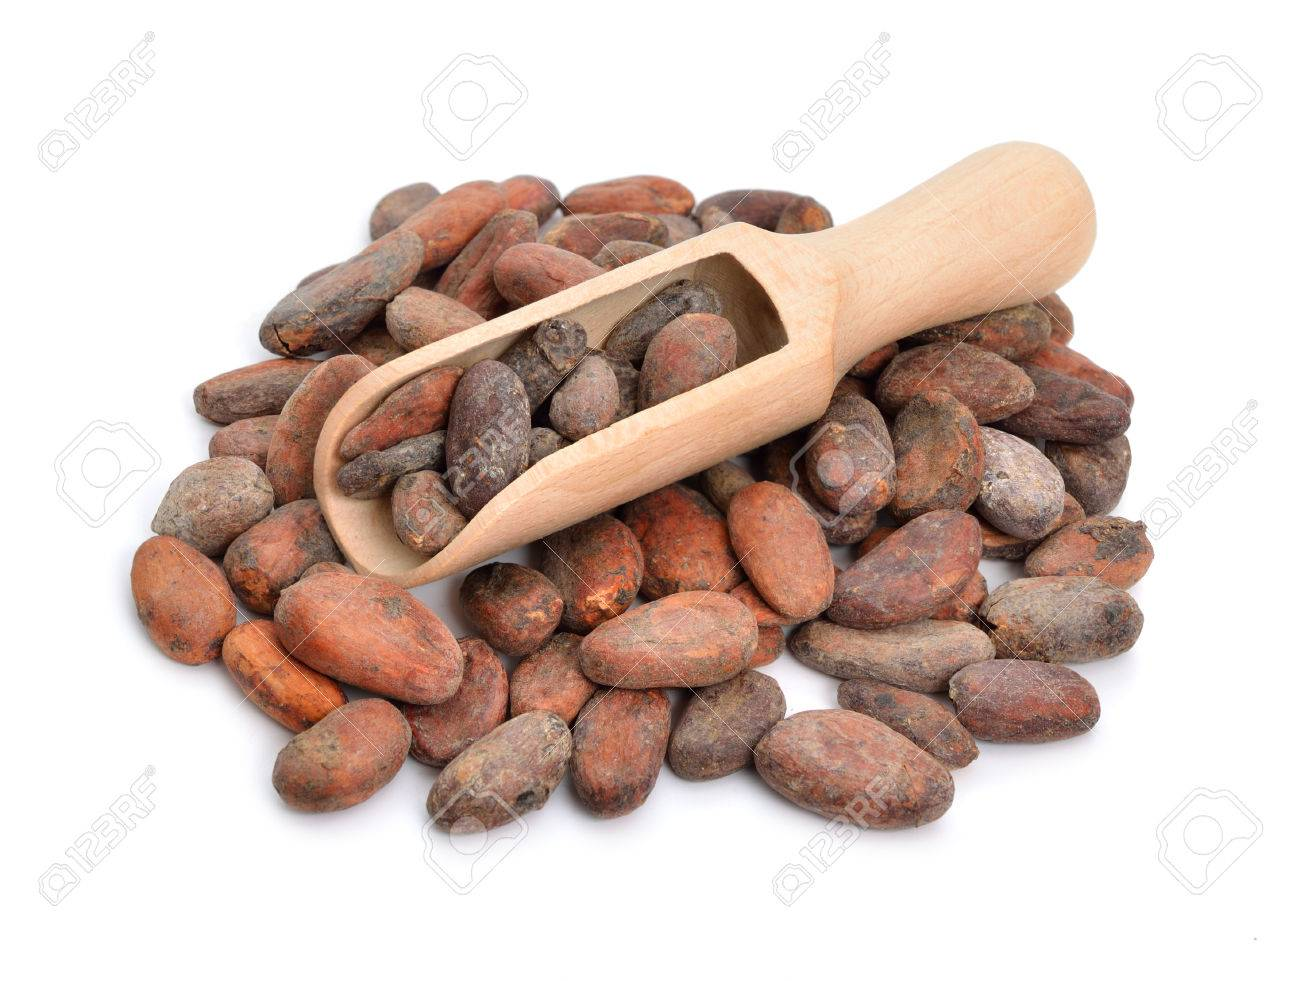 Cocoa beans before roast. Isolated on white background. - 44810204